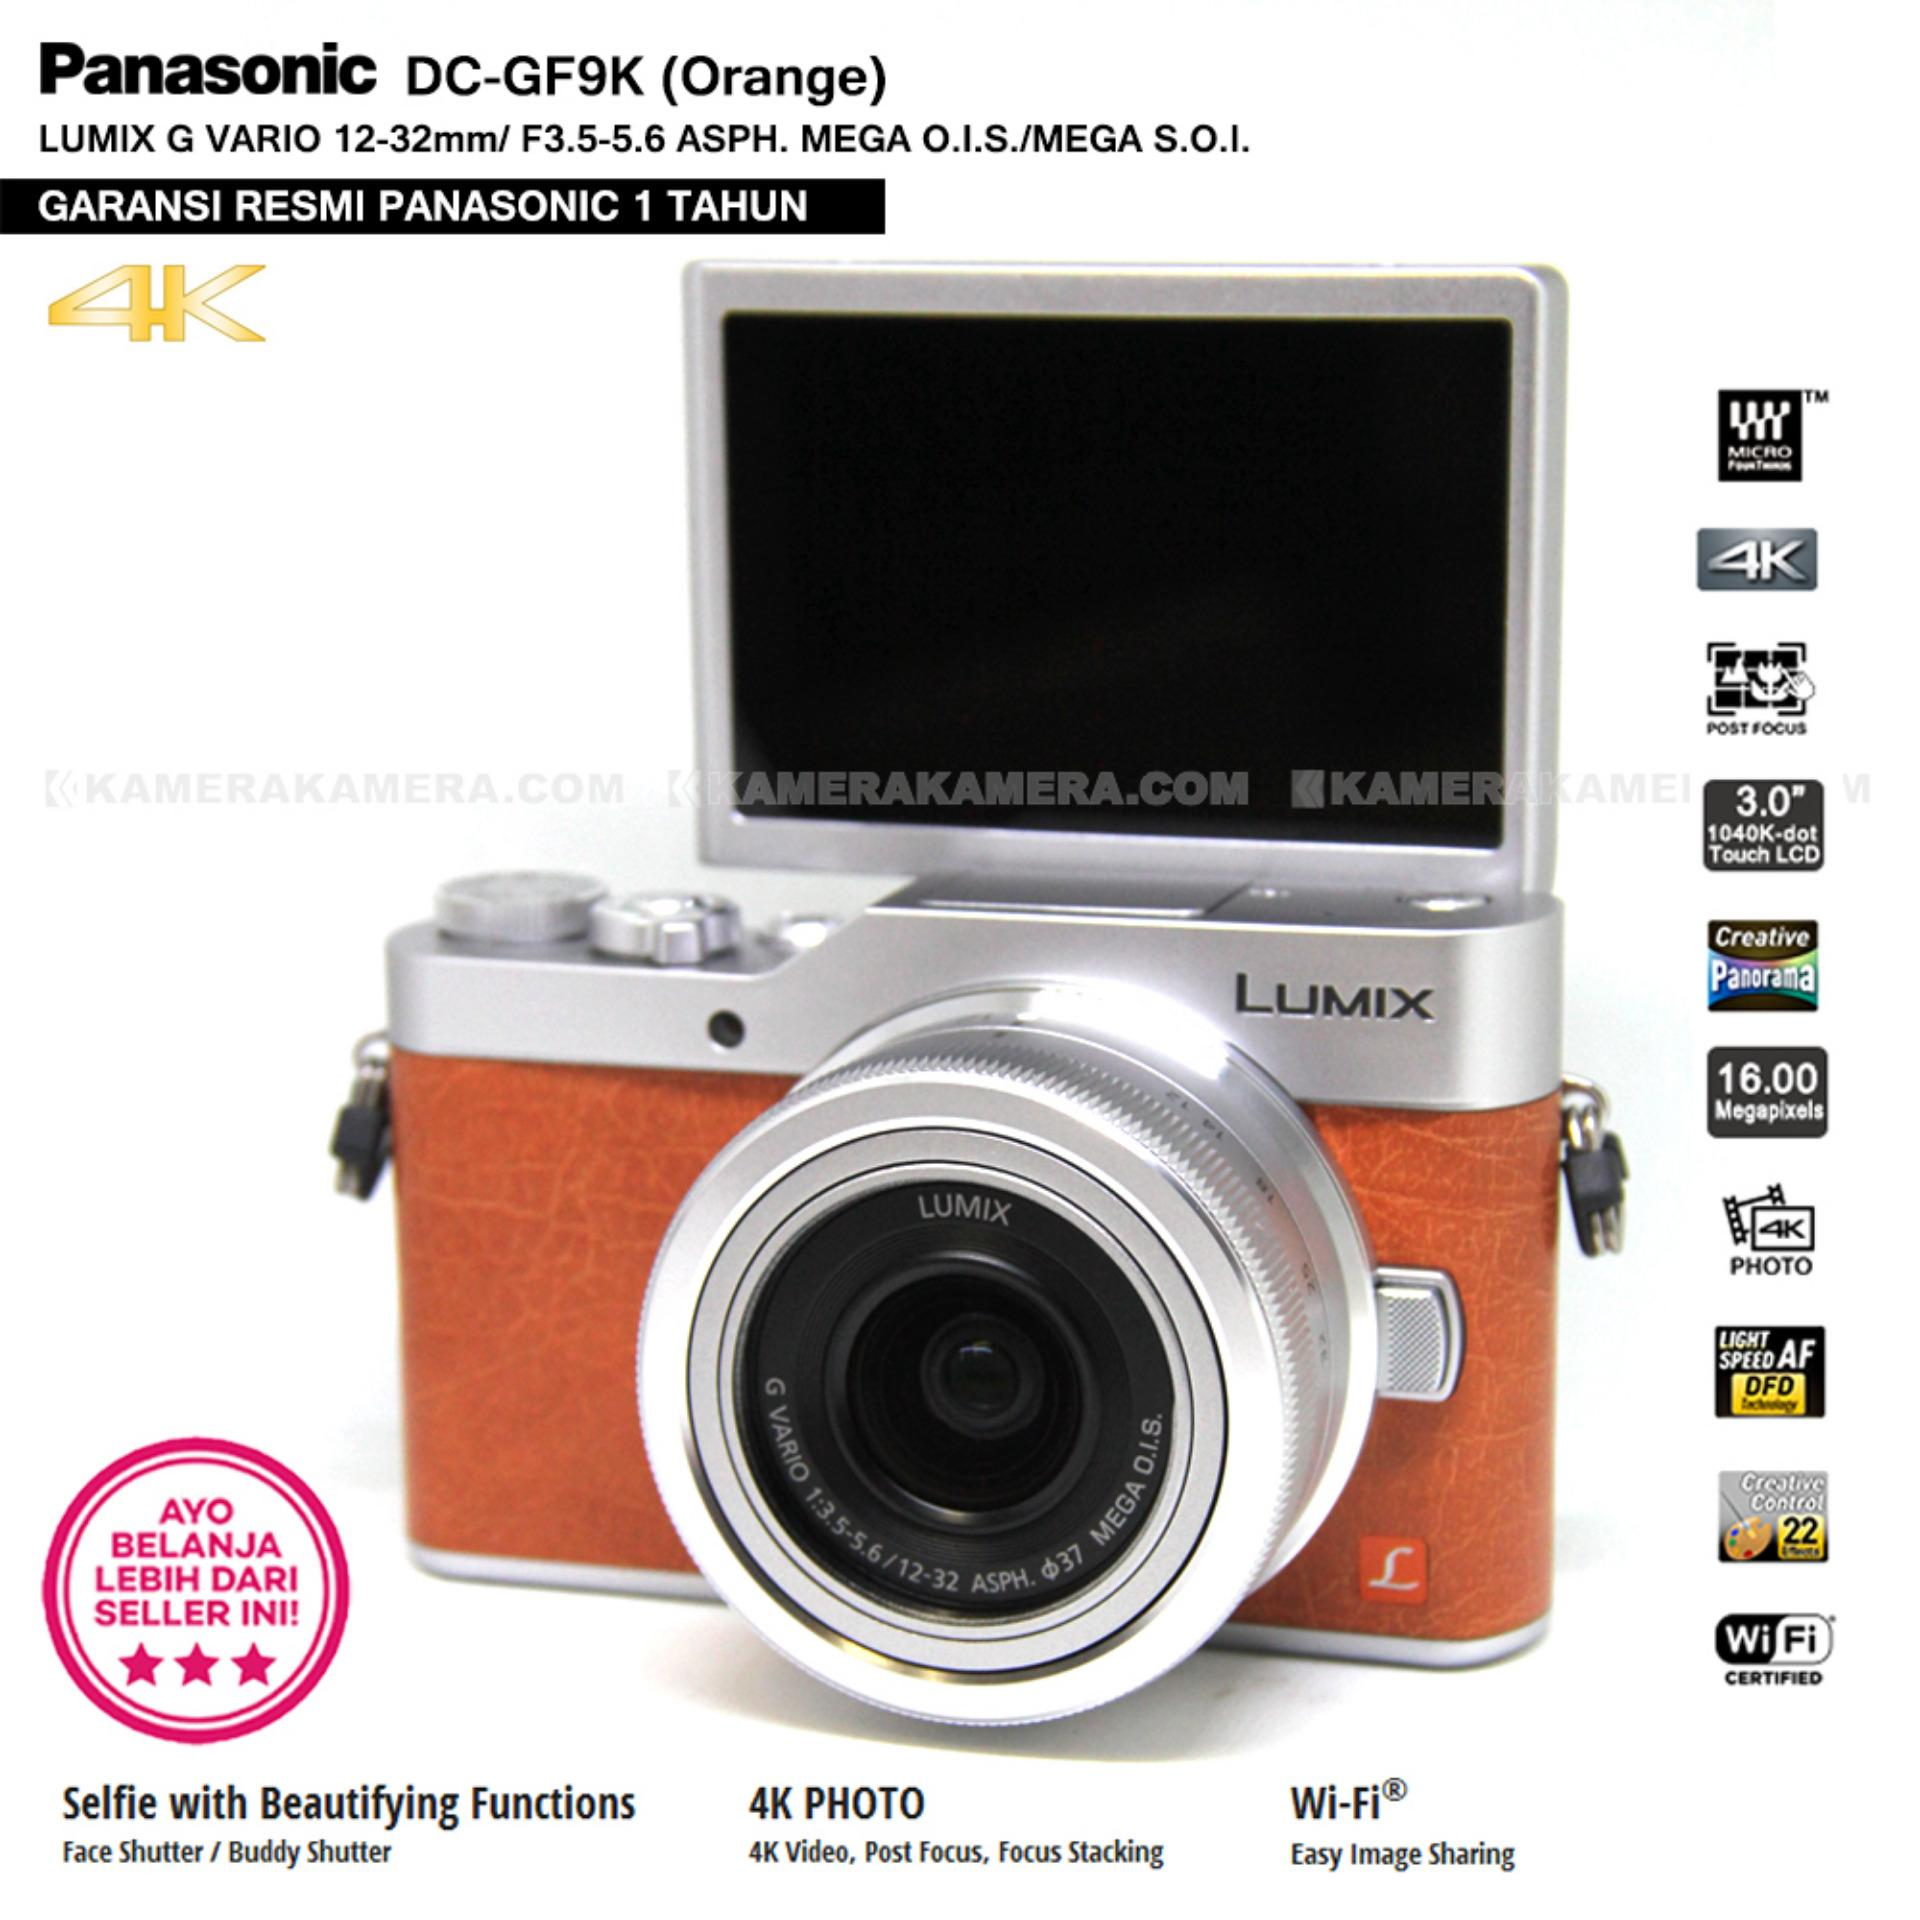 Panasonic DC GF9K Orange 4K Mirrorless Camera Post Focus 16MP Garansi Resmi